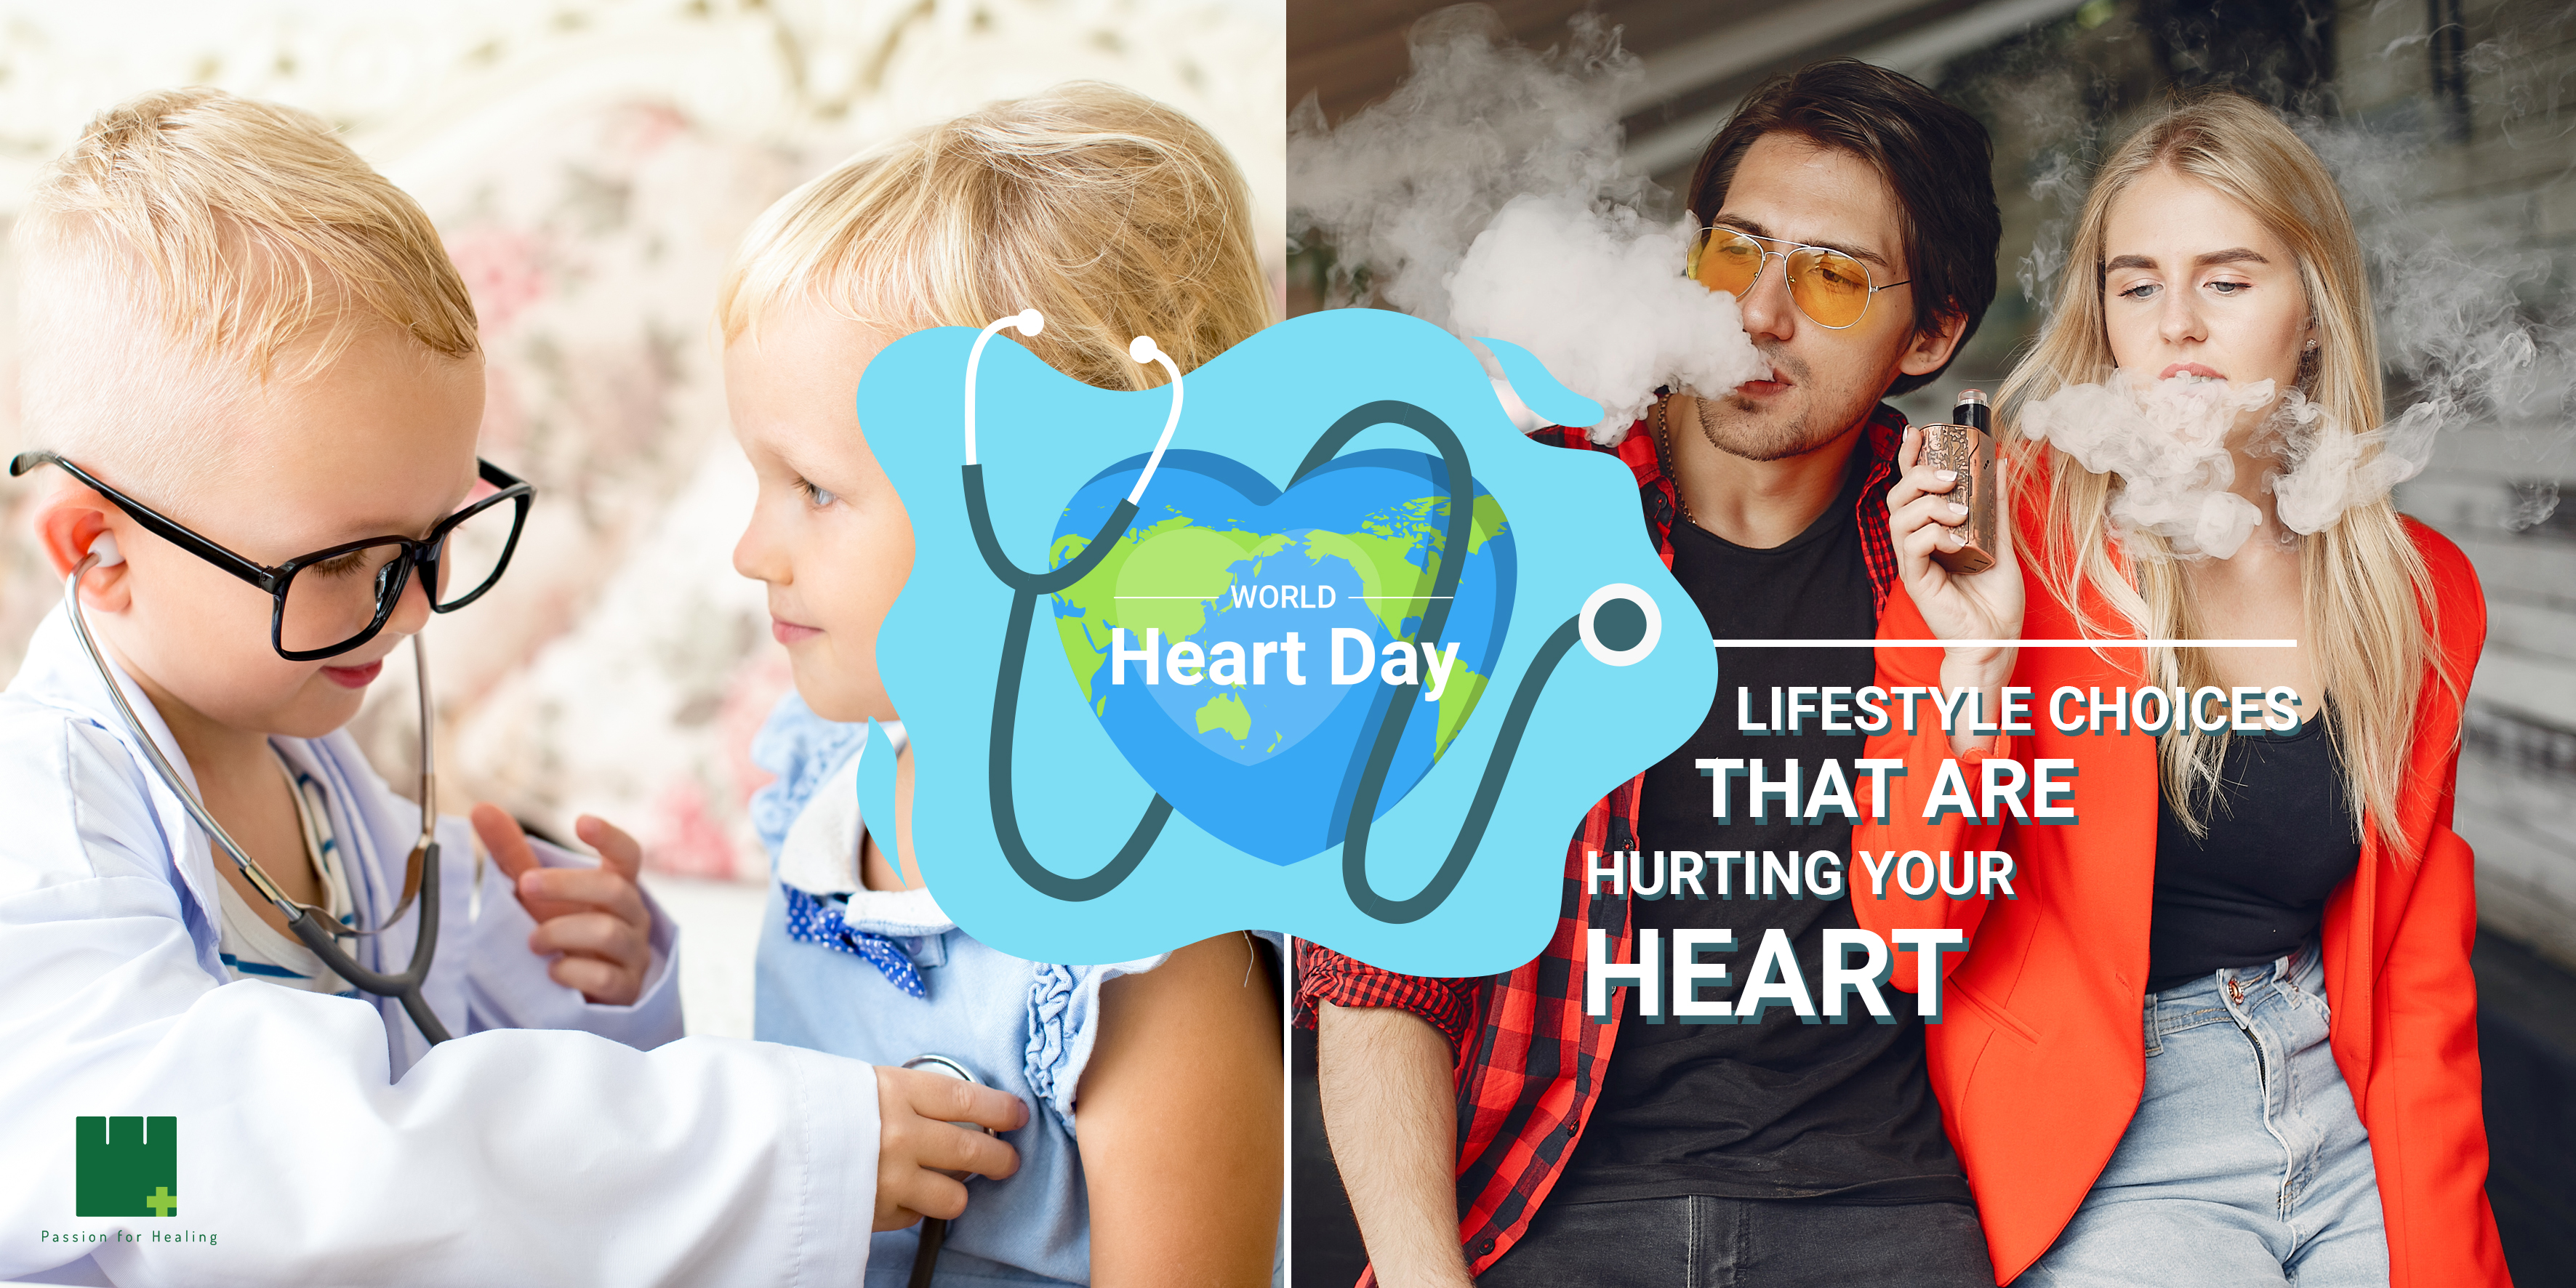 Lifestyle Choices That Are Hurting Your Heart (World Heart Day)